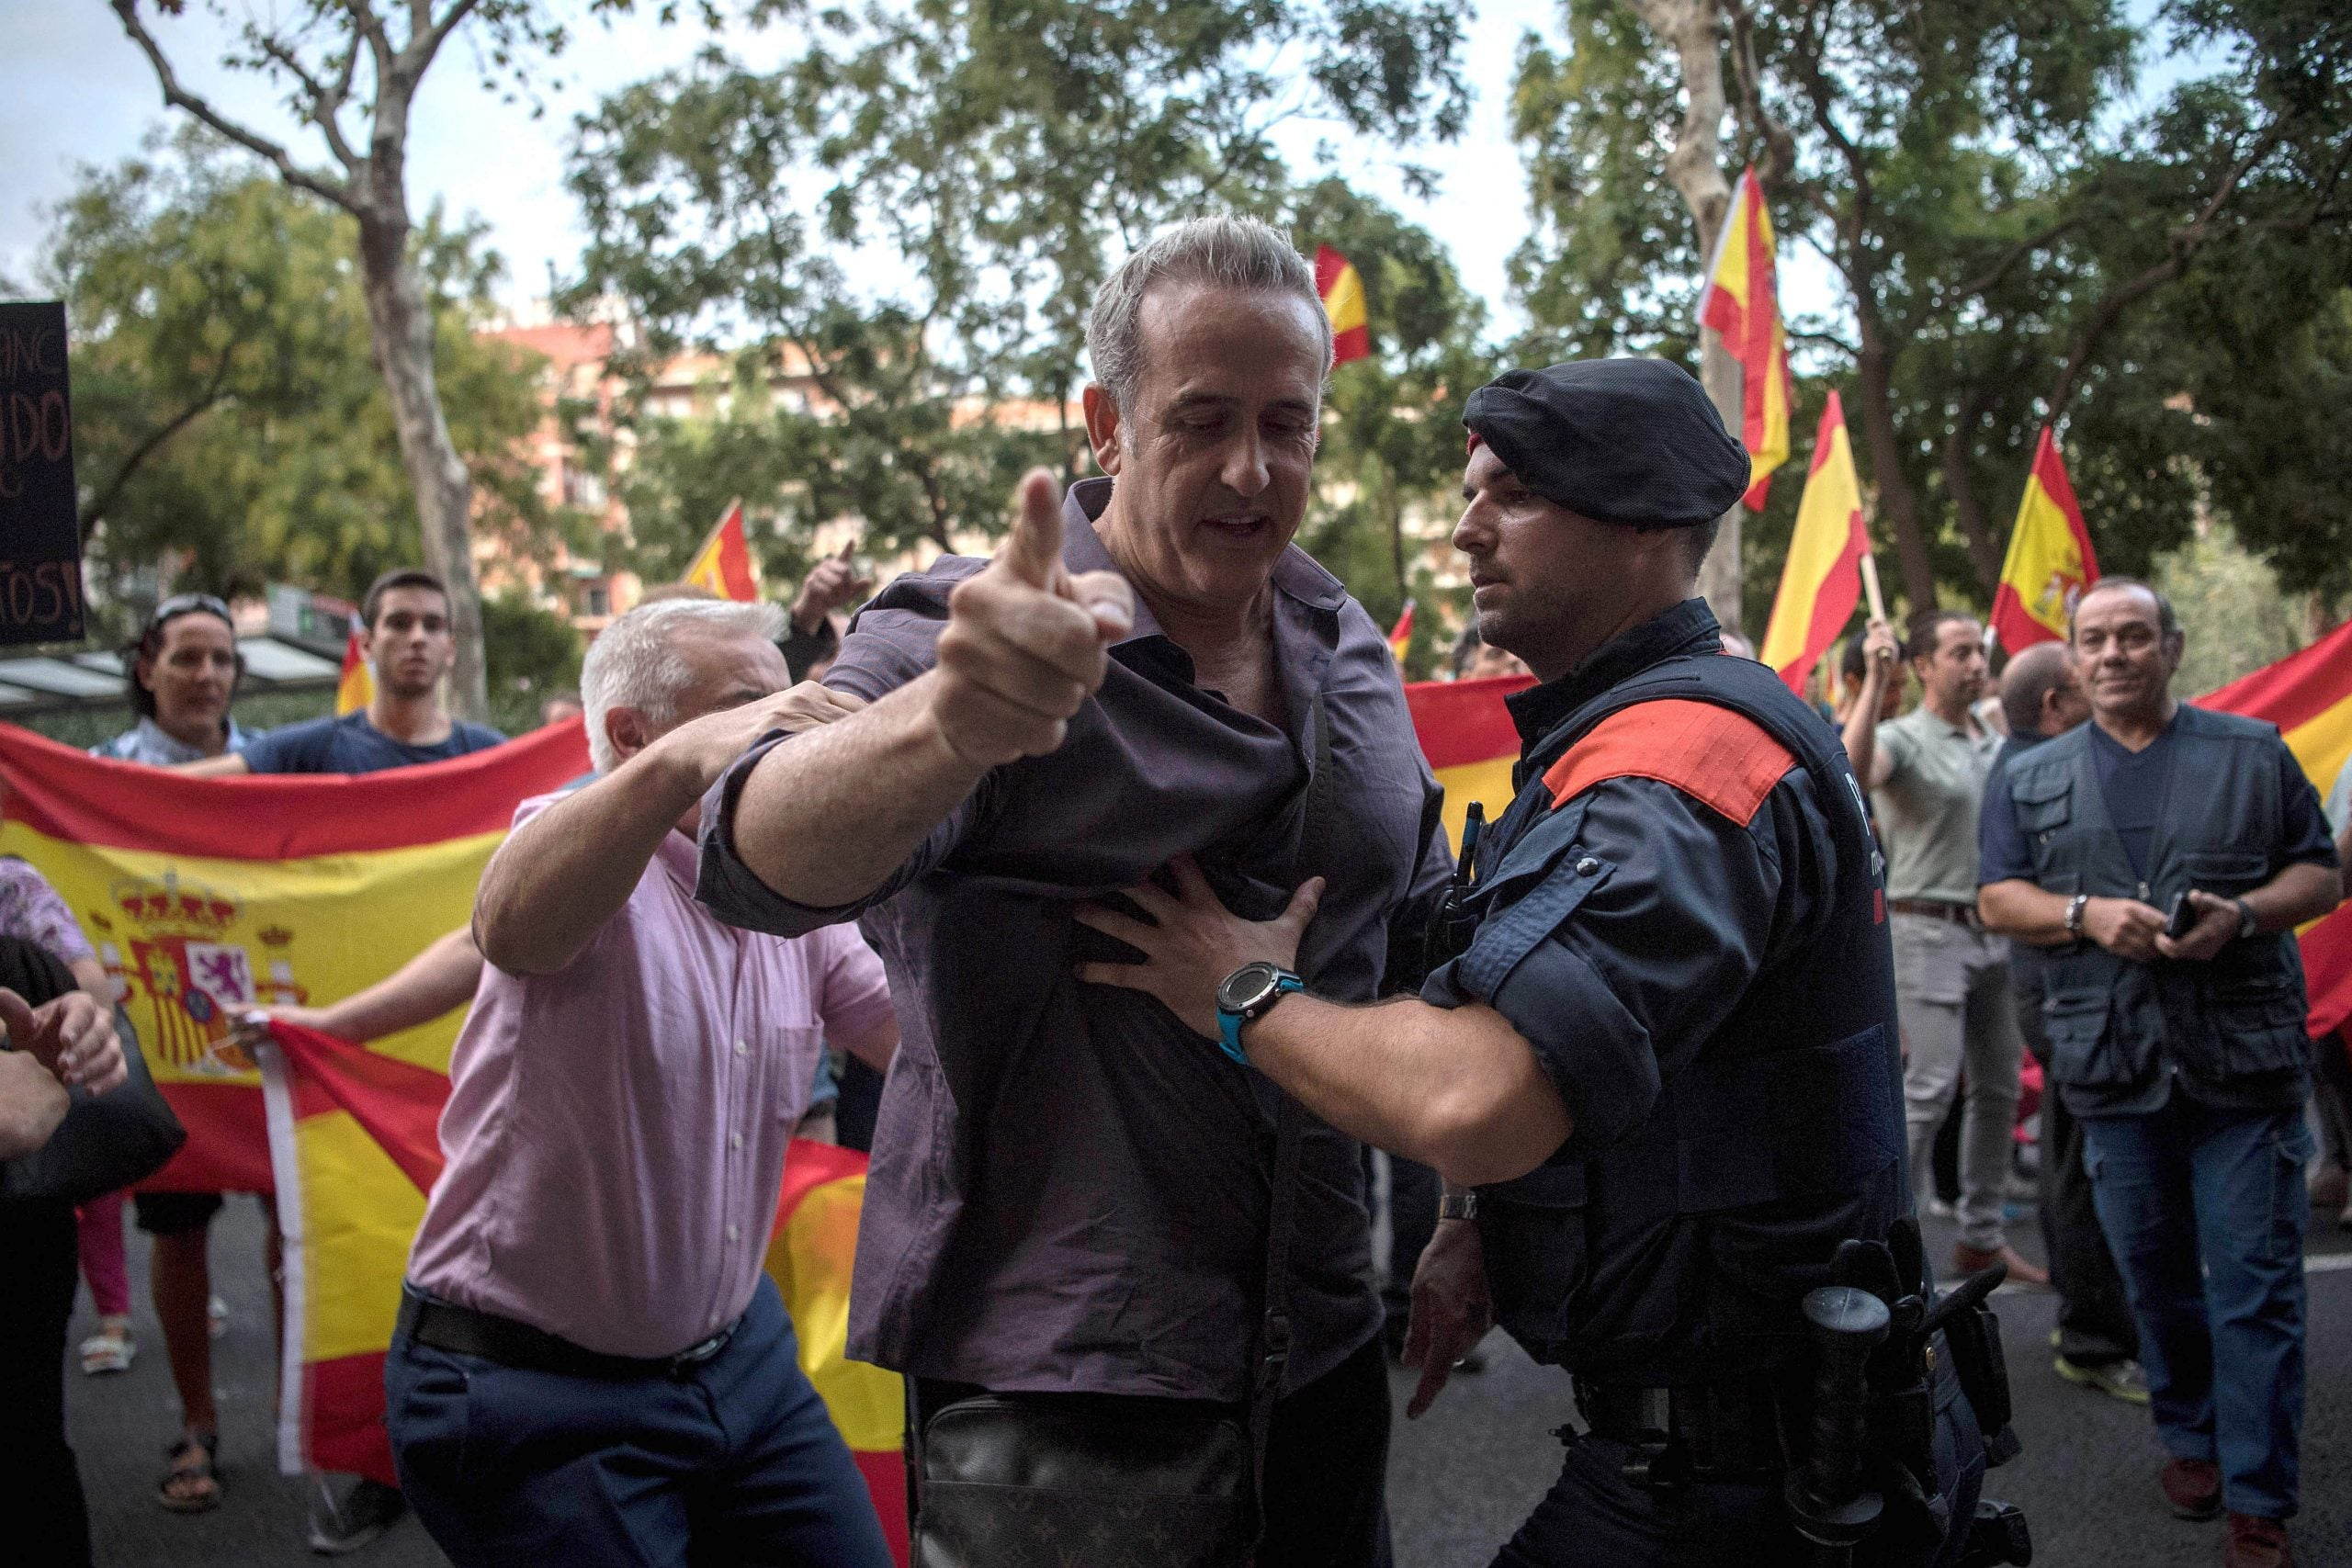 Like Brexit, the Catalan independence vote isn't quite as democratic as it seems